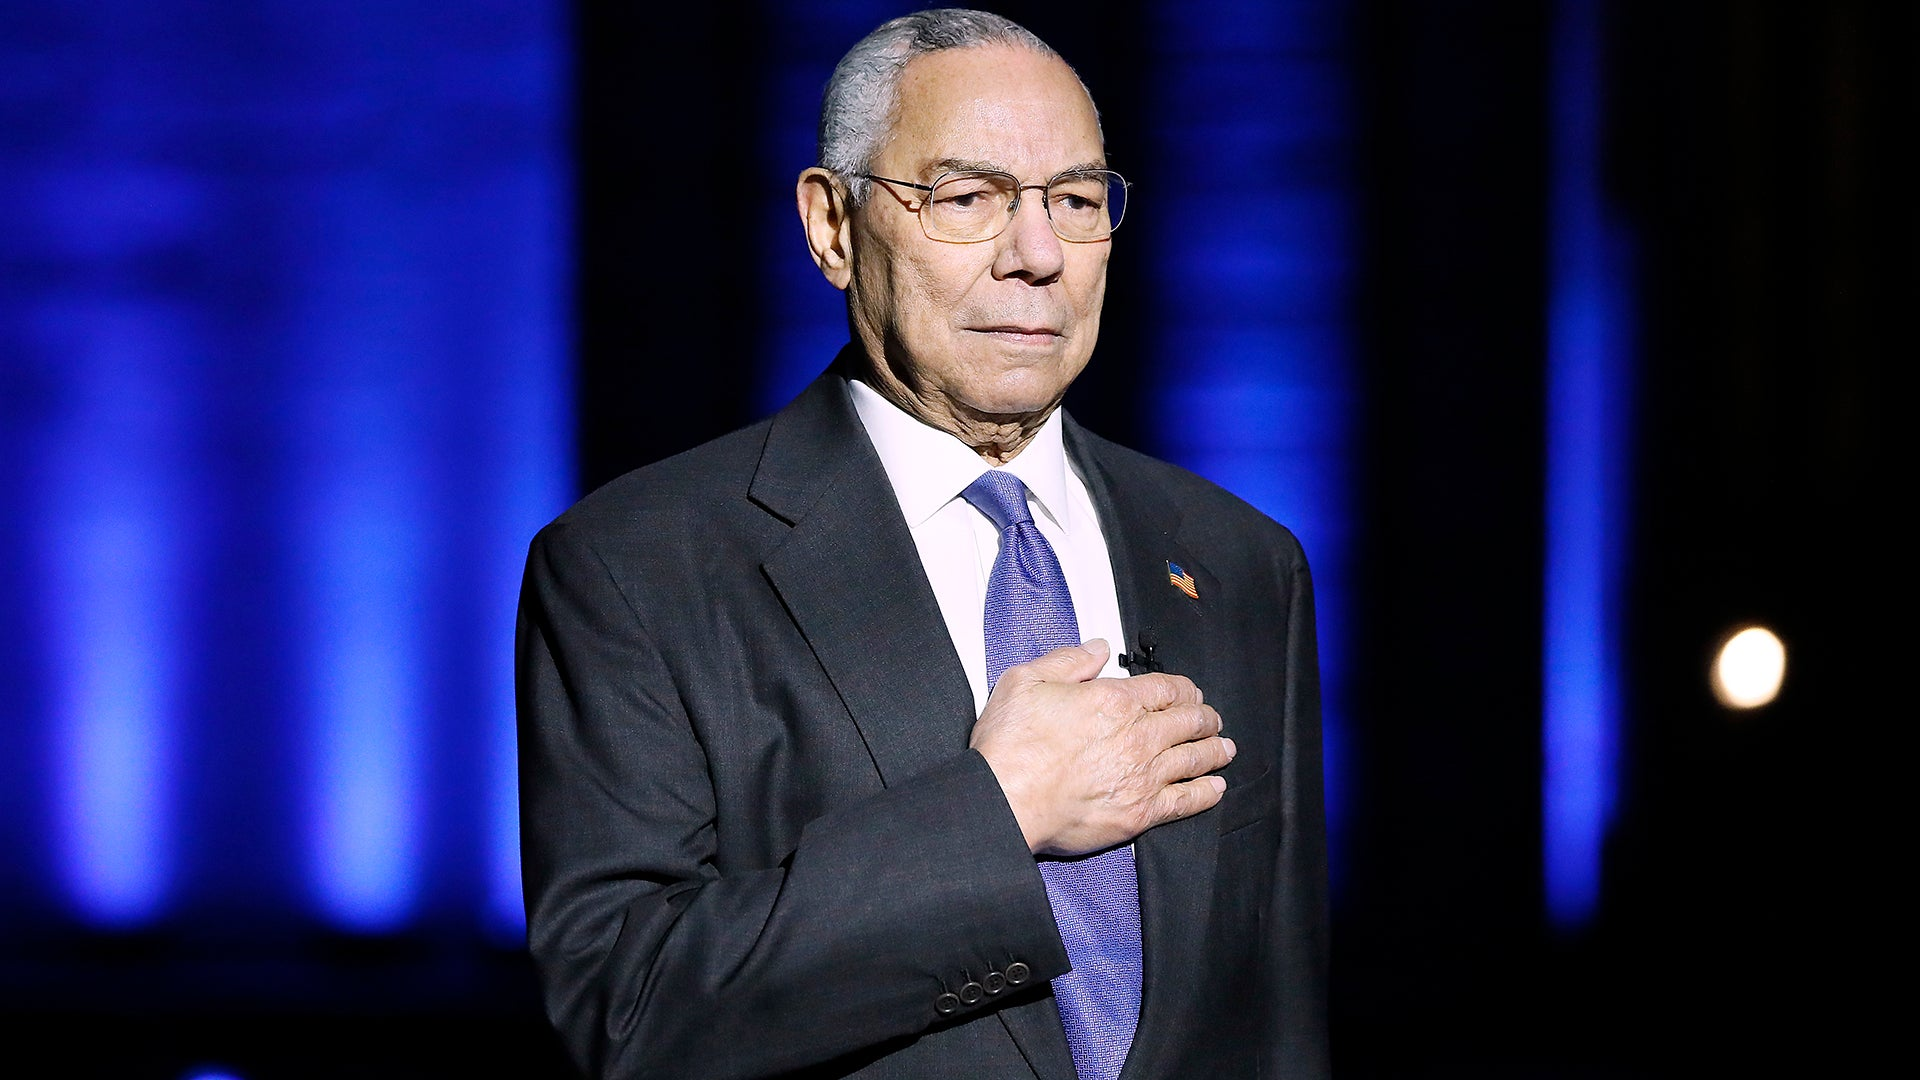 Colin Powell, first Black chairman of the Joint Chiefs of Staff, dies at 84